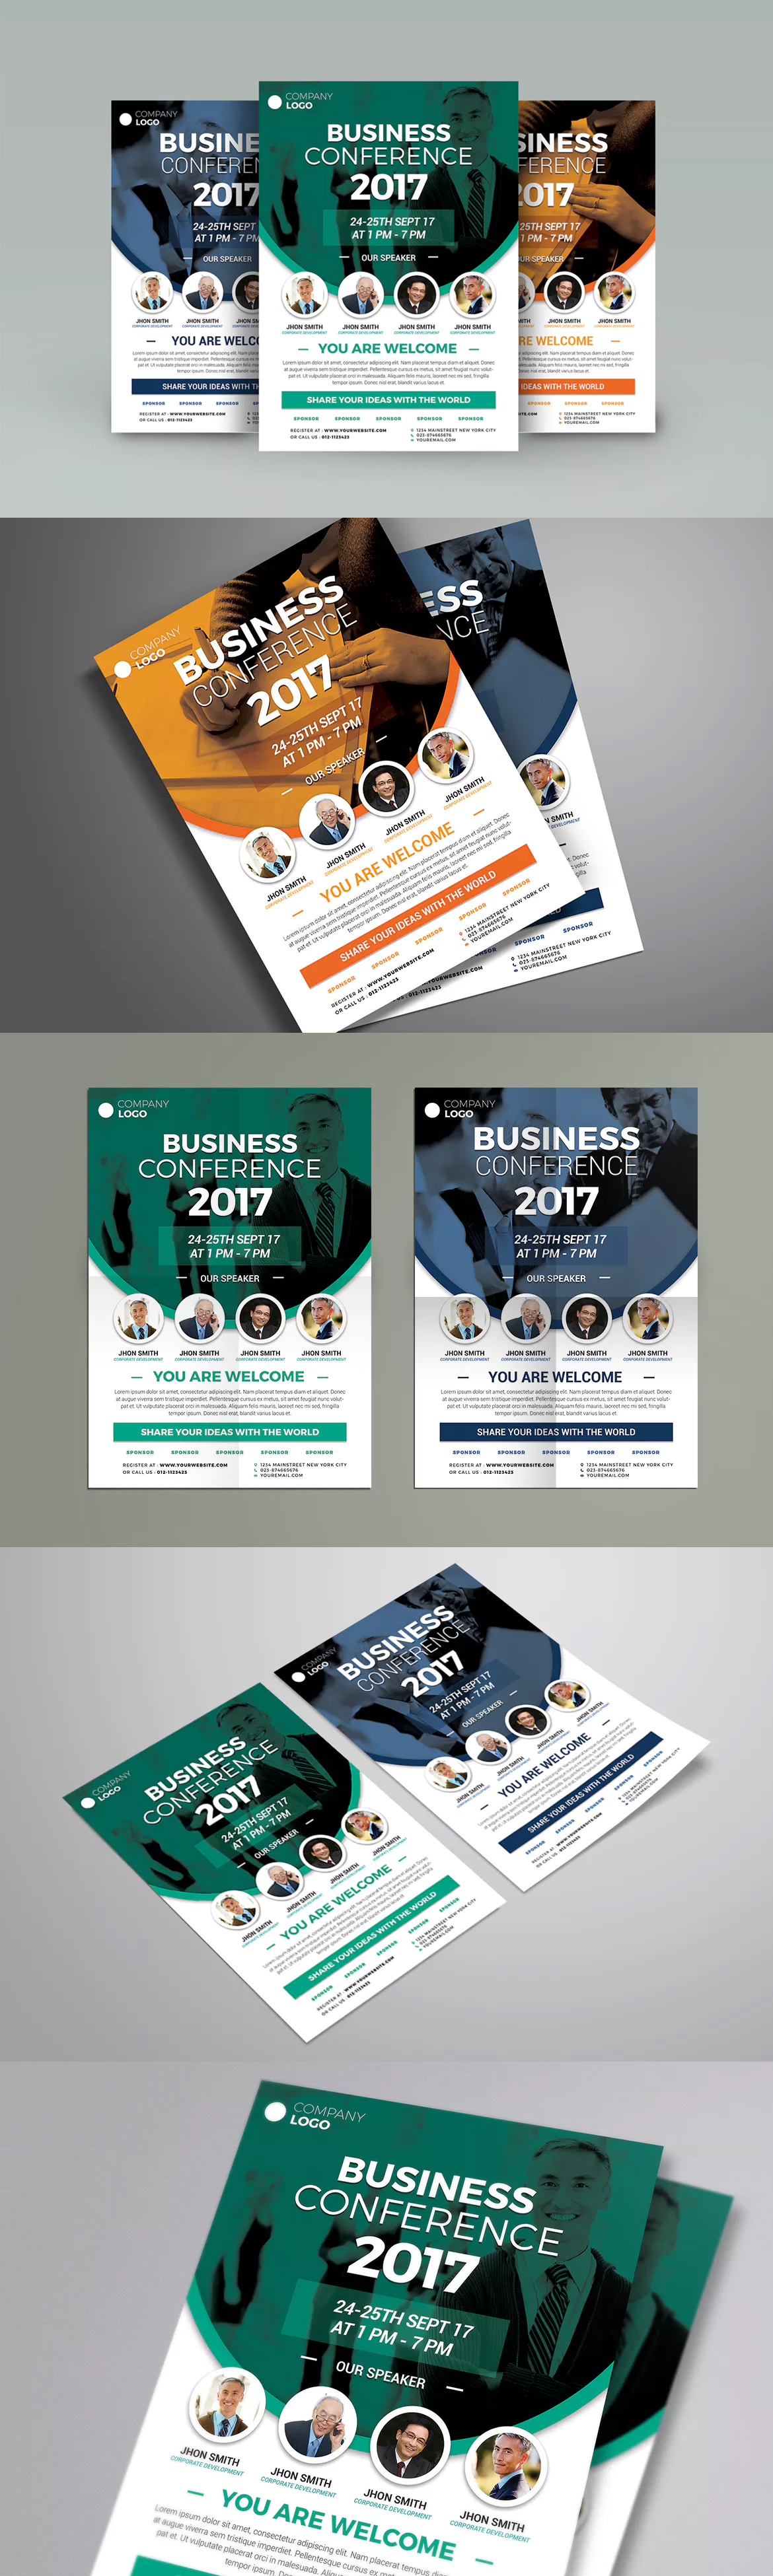 Conference Flyer Template Psd  Flyer Template    Flyer